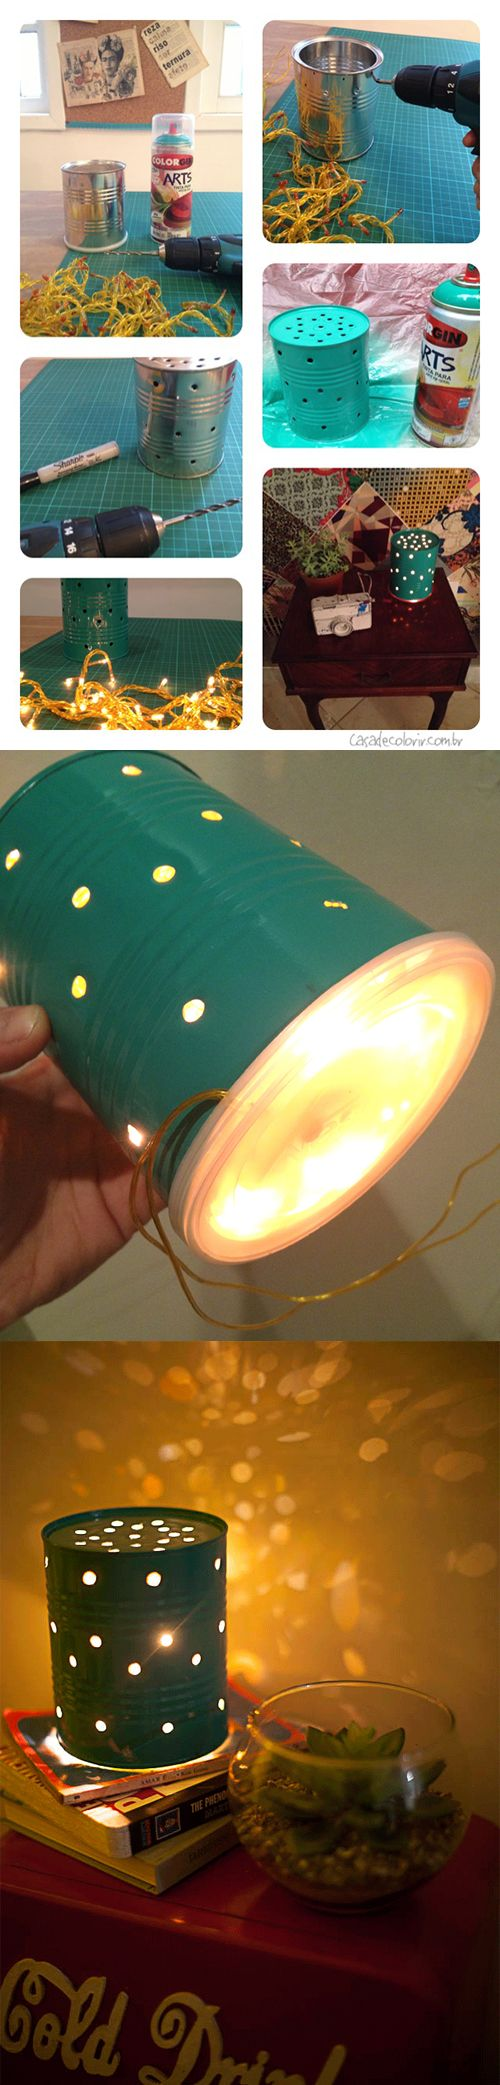 Make a Fire Fly Night Light- LOVE this!